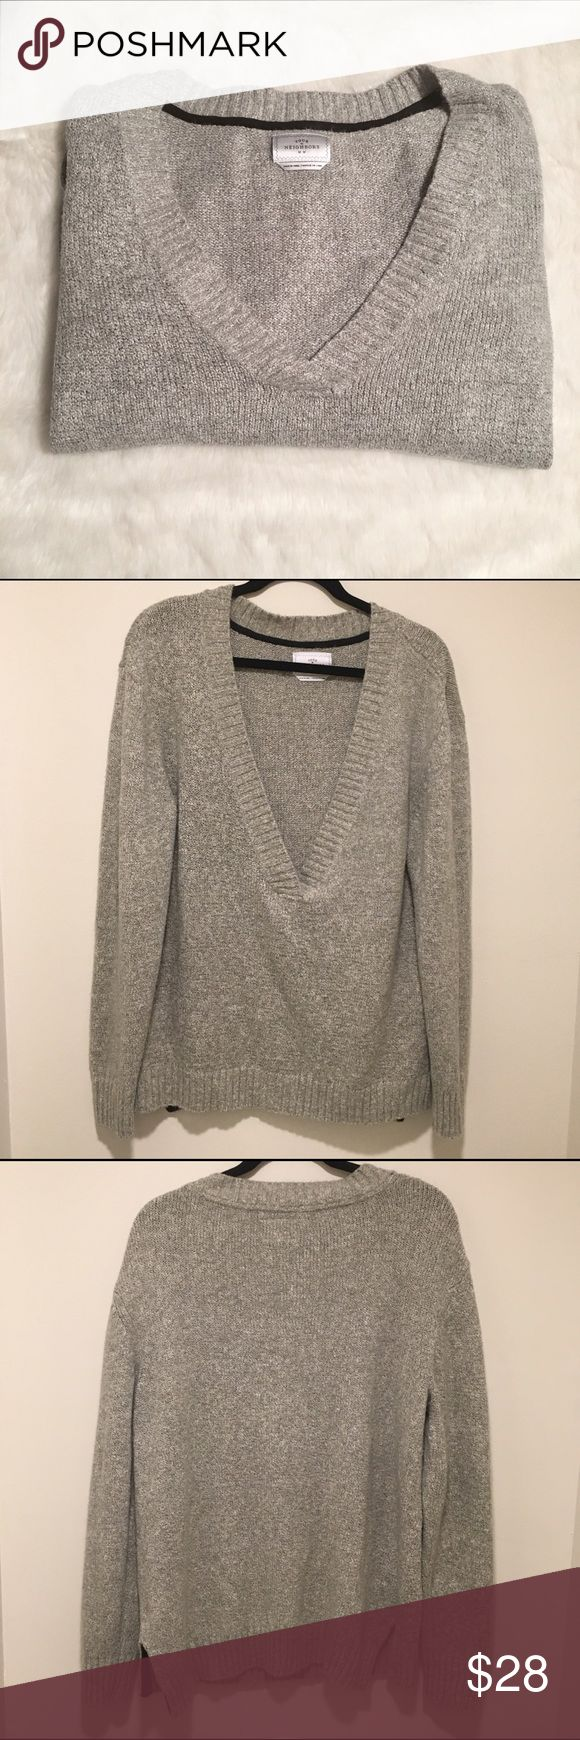 UO Your Neighbors Men's V-Neck Sweater Your girlfriend will want to keep this one to herself - this cotton and acrylic blend sweater is super soft and comfy. Comfort then a snuggie! Excellent condition. Has slits on the sides. Urban Outfitters Sweaters V-Neck